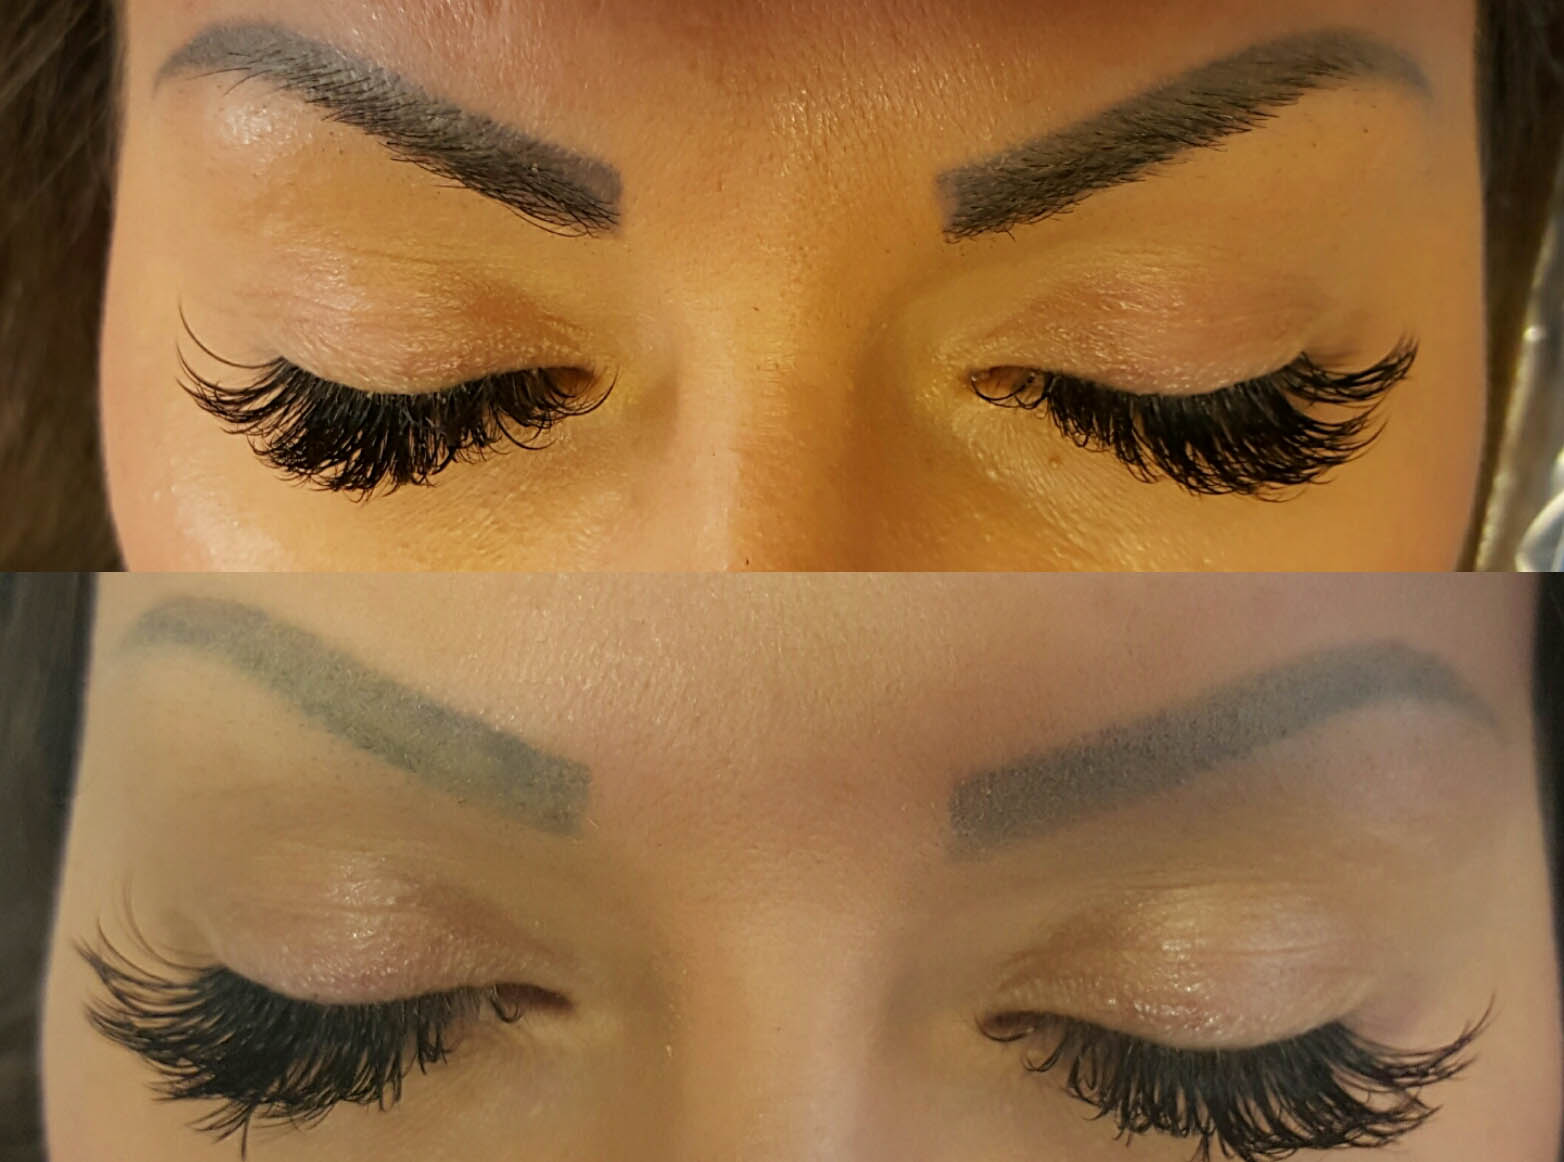 How To Remove Makeup From Semi Permanent Eyelashes